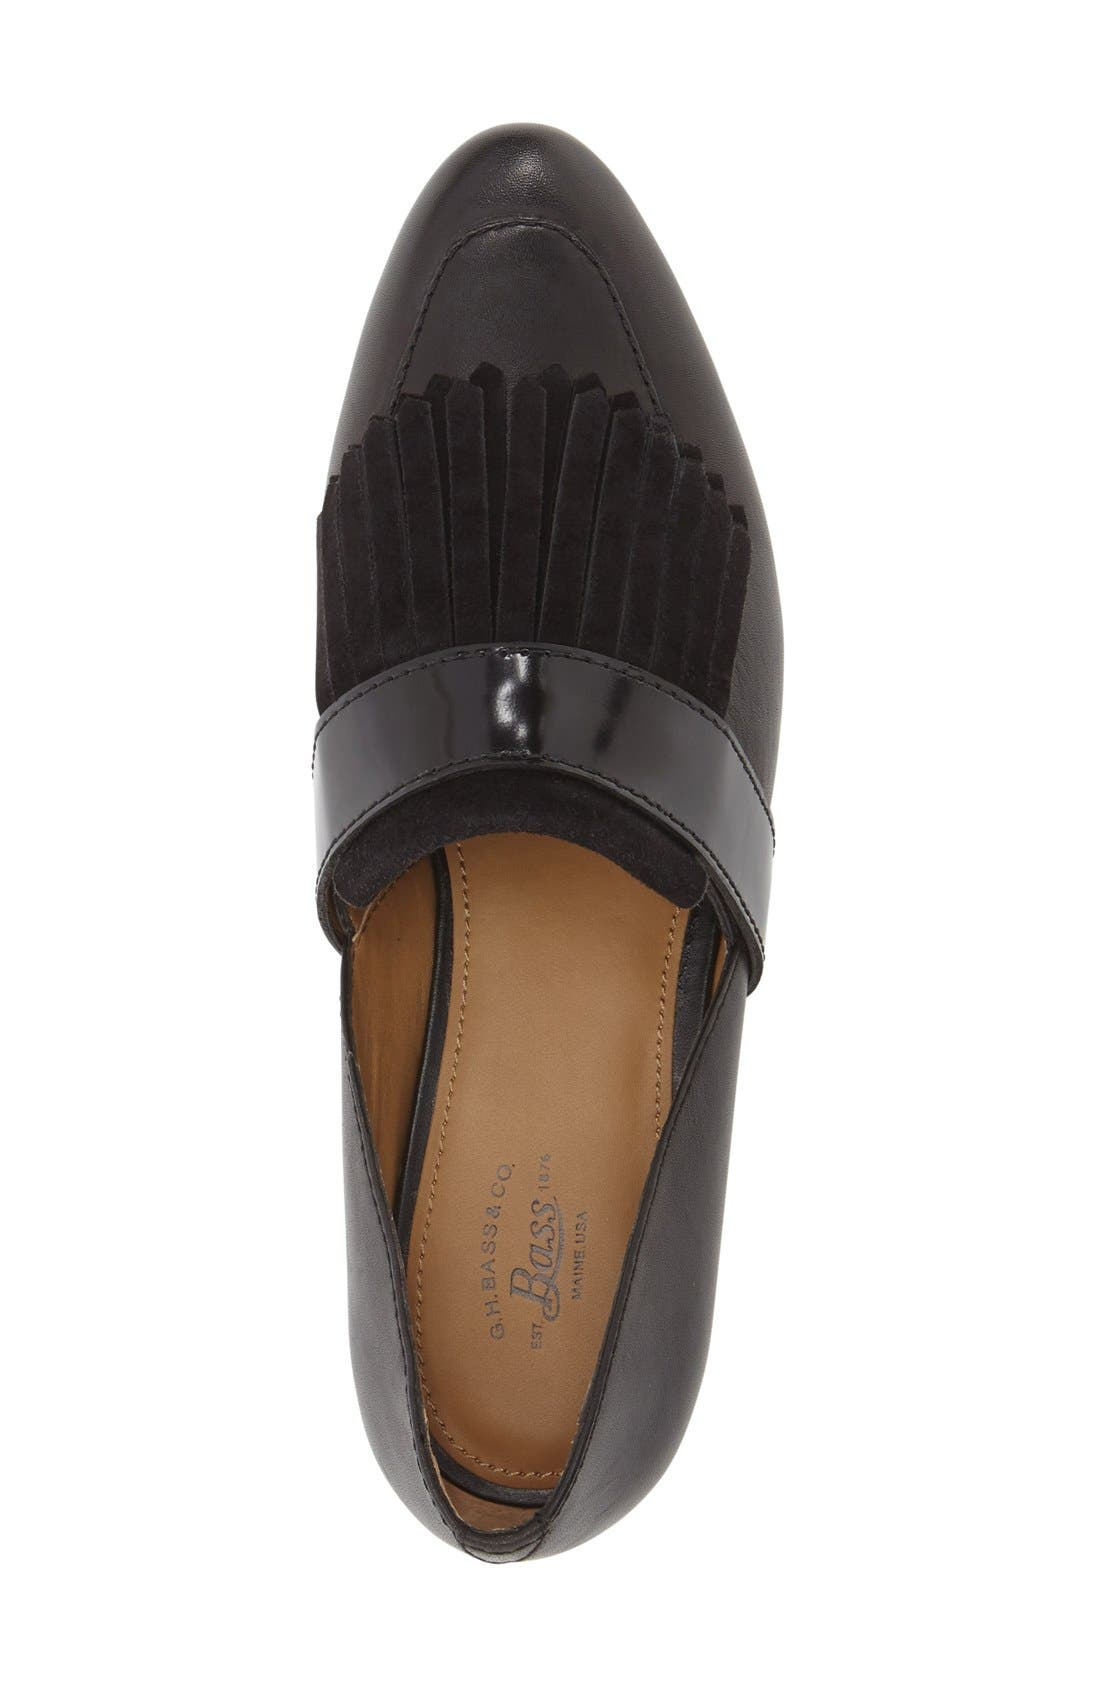 'Harlow' Kiltie Leather Loafer,                             Alternate thumbnail 3, color,                             BLACK LEATHER